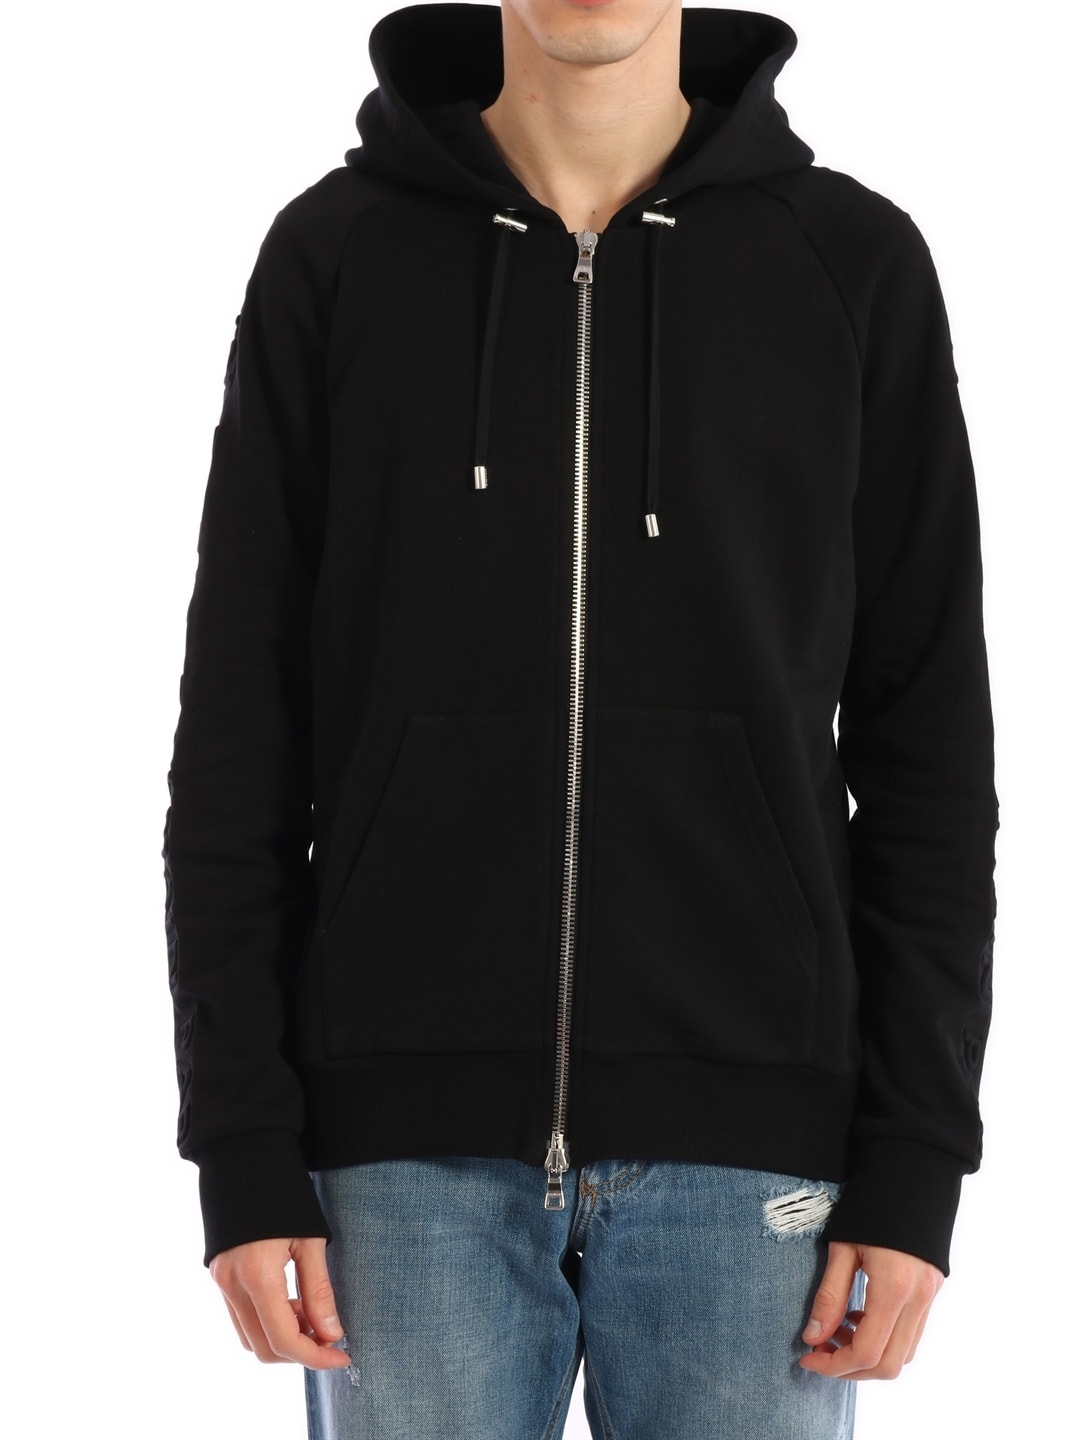 Balmain Full-zip Sweatshirt Black